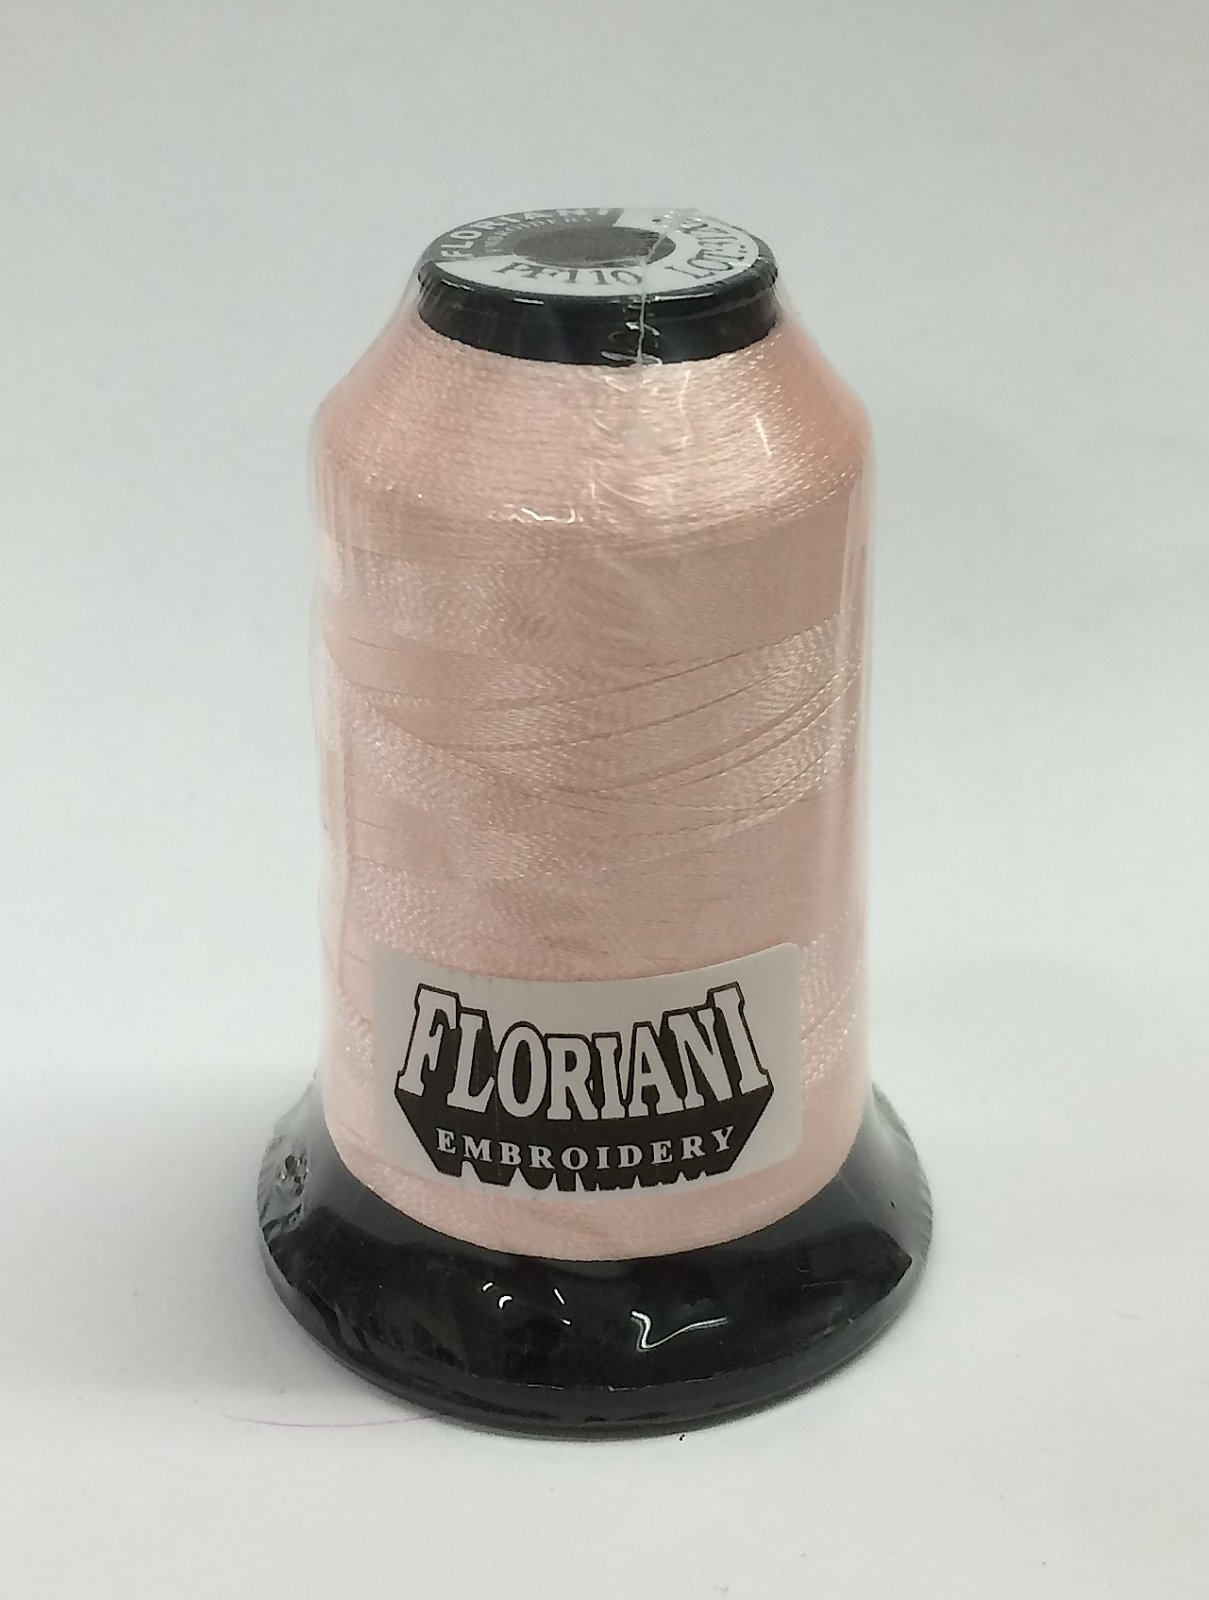 Floriani Embroidery Thread Color #0110